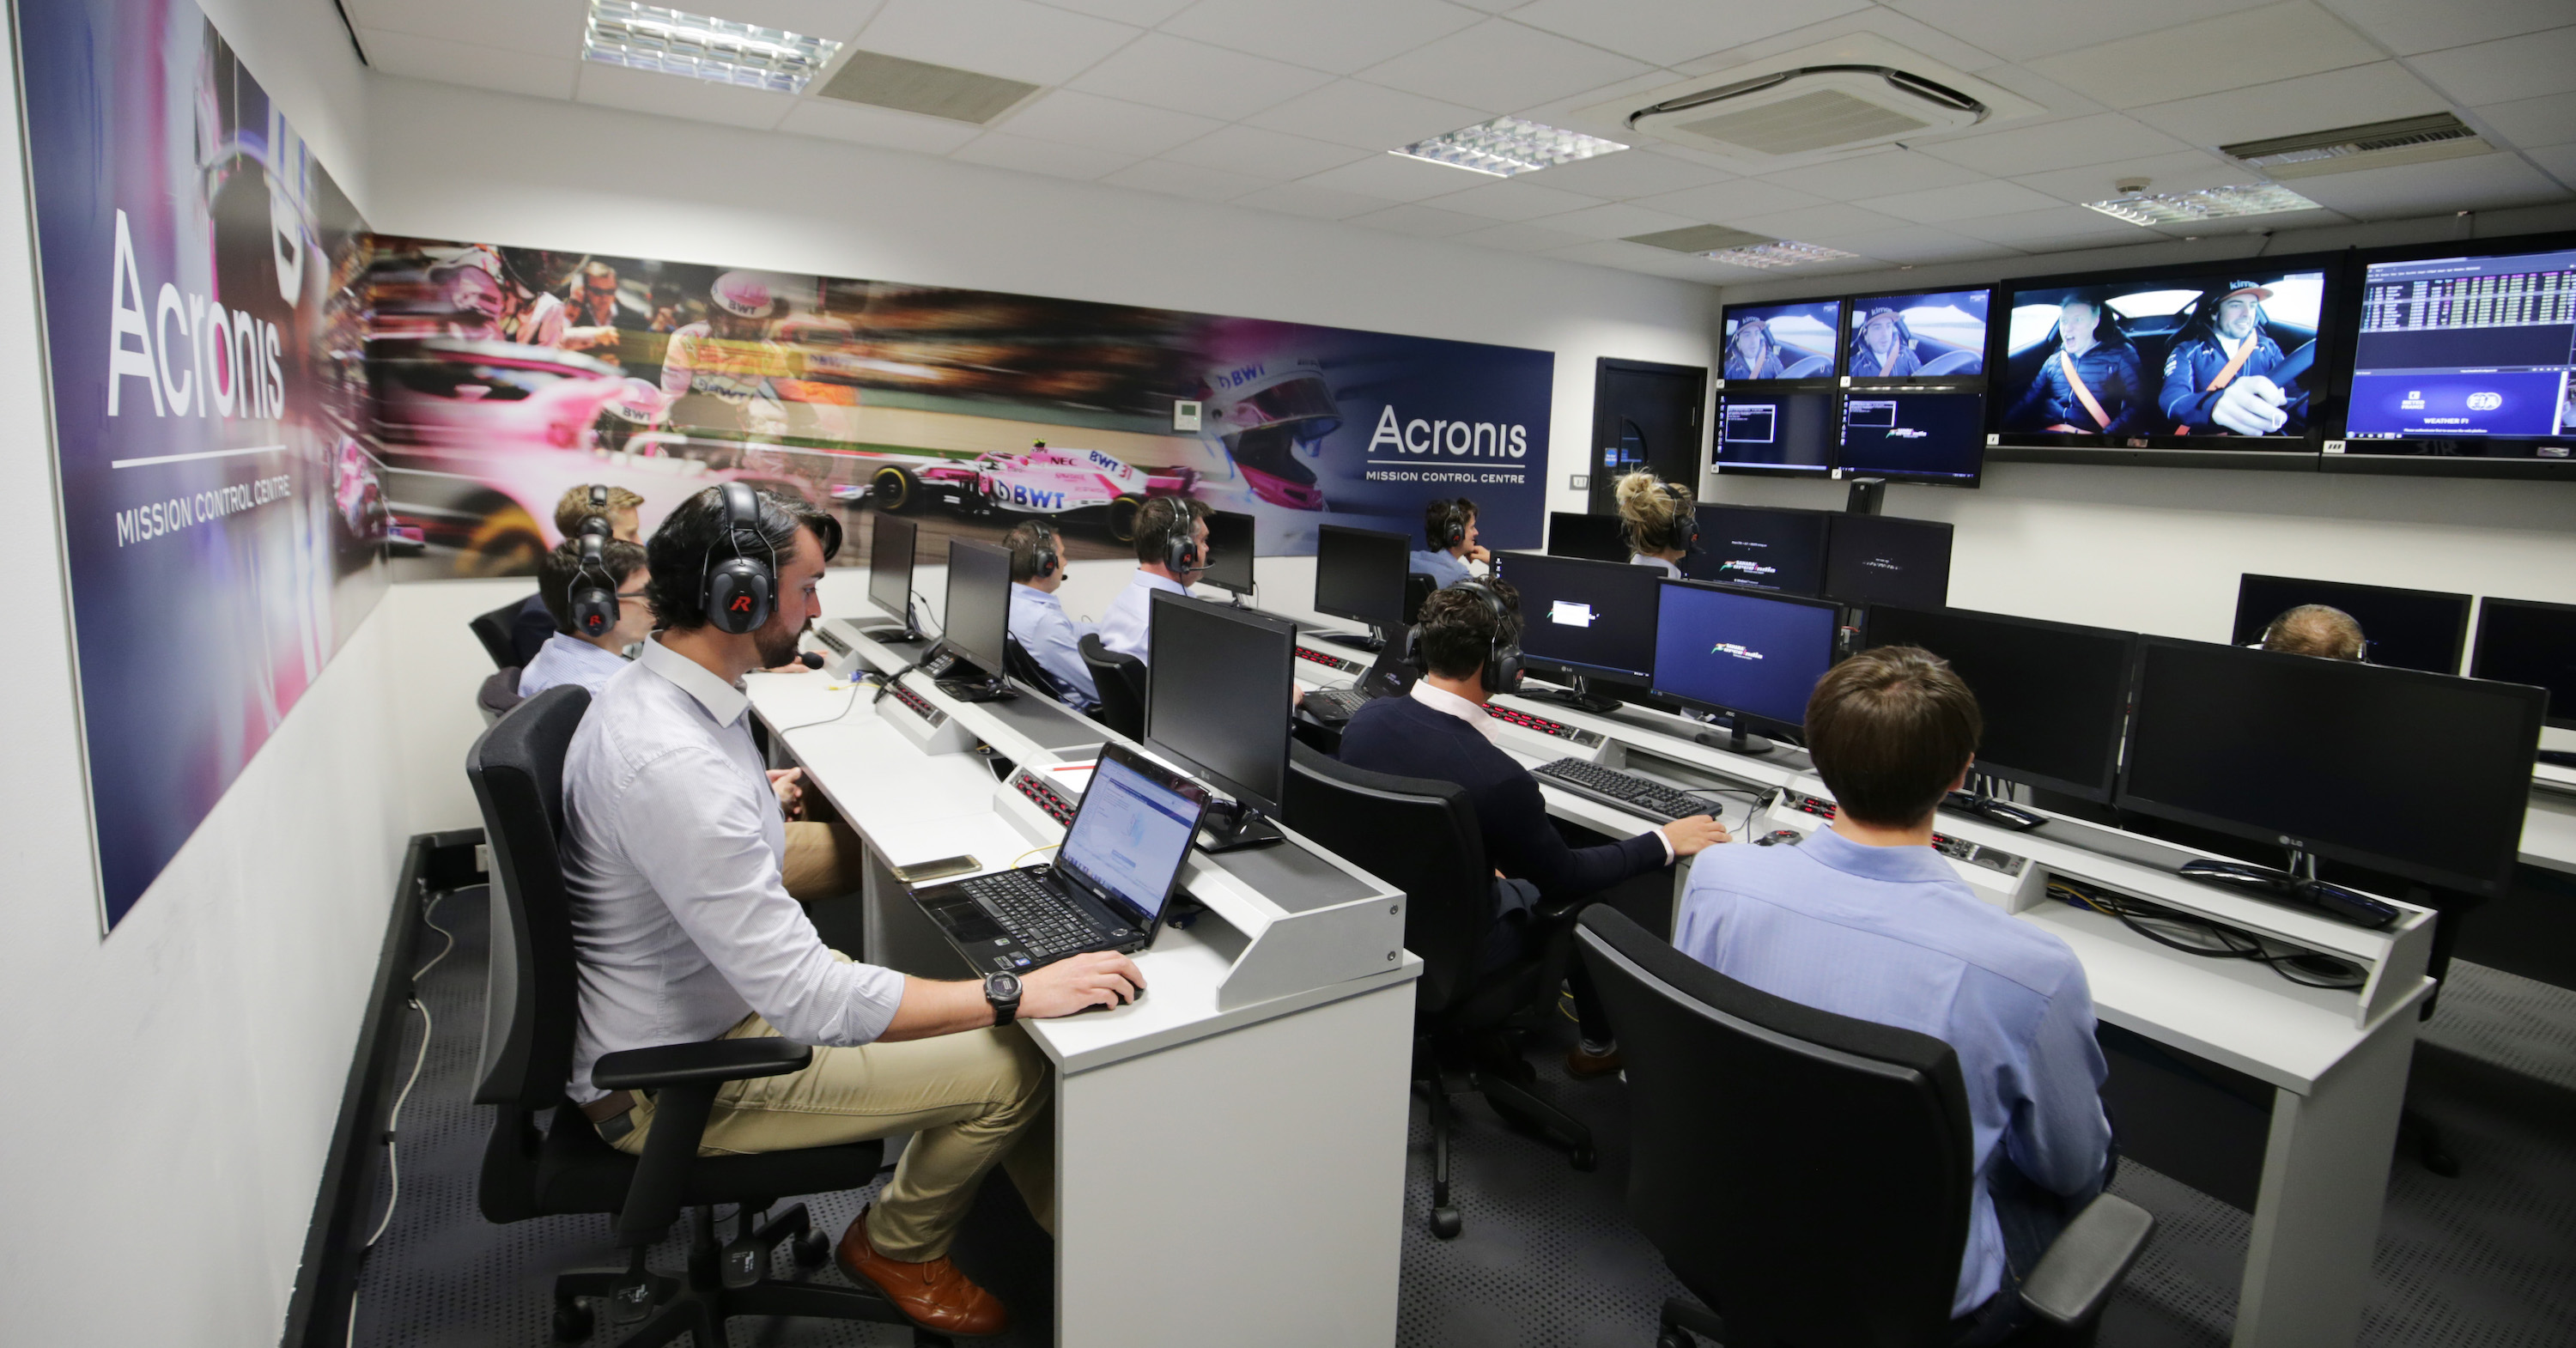 Acronis Mission Control